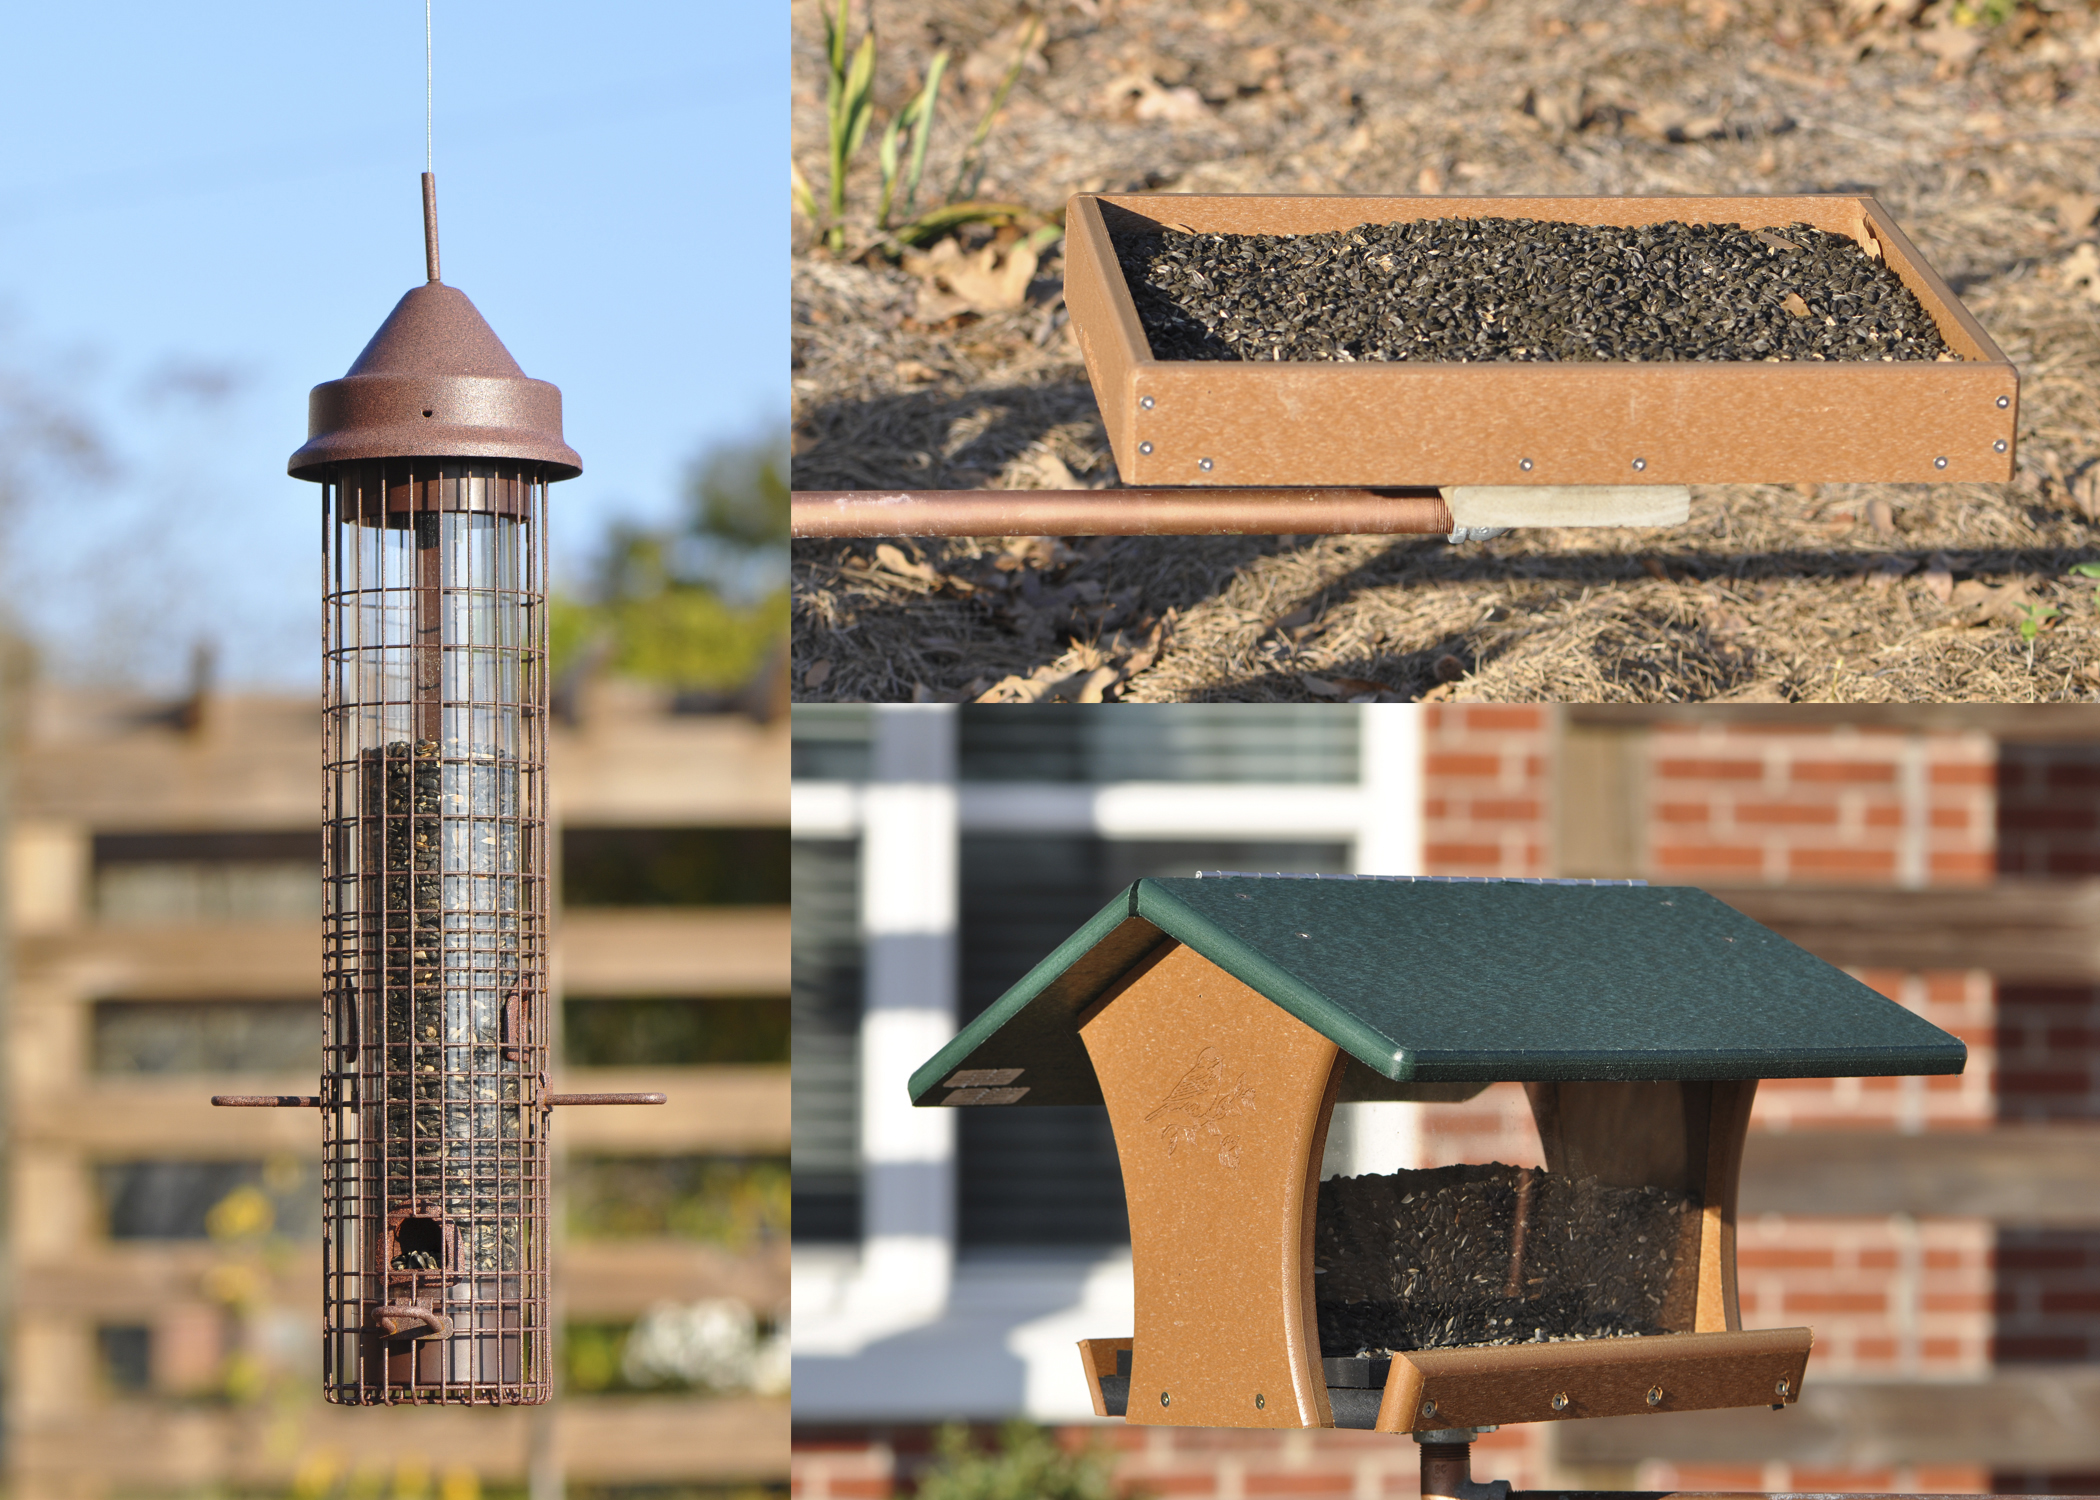 pinterest feeder birdhouses expensive catewiniston best house martin feeders bird on images purple houses